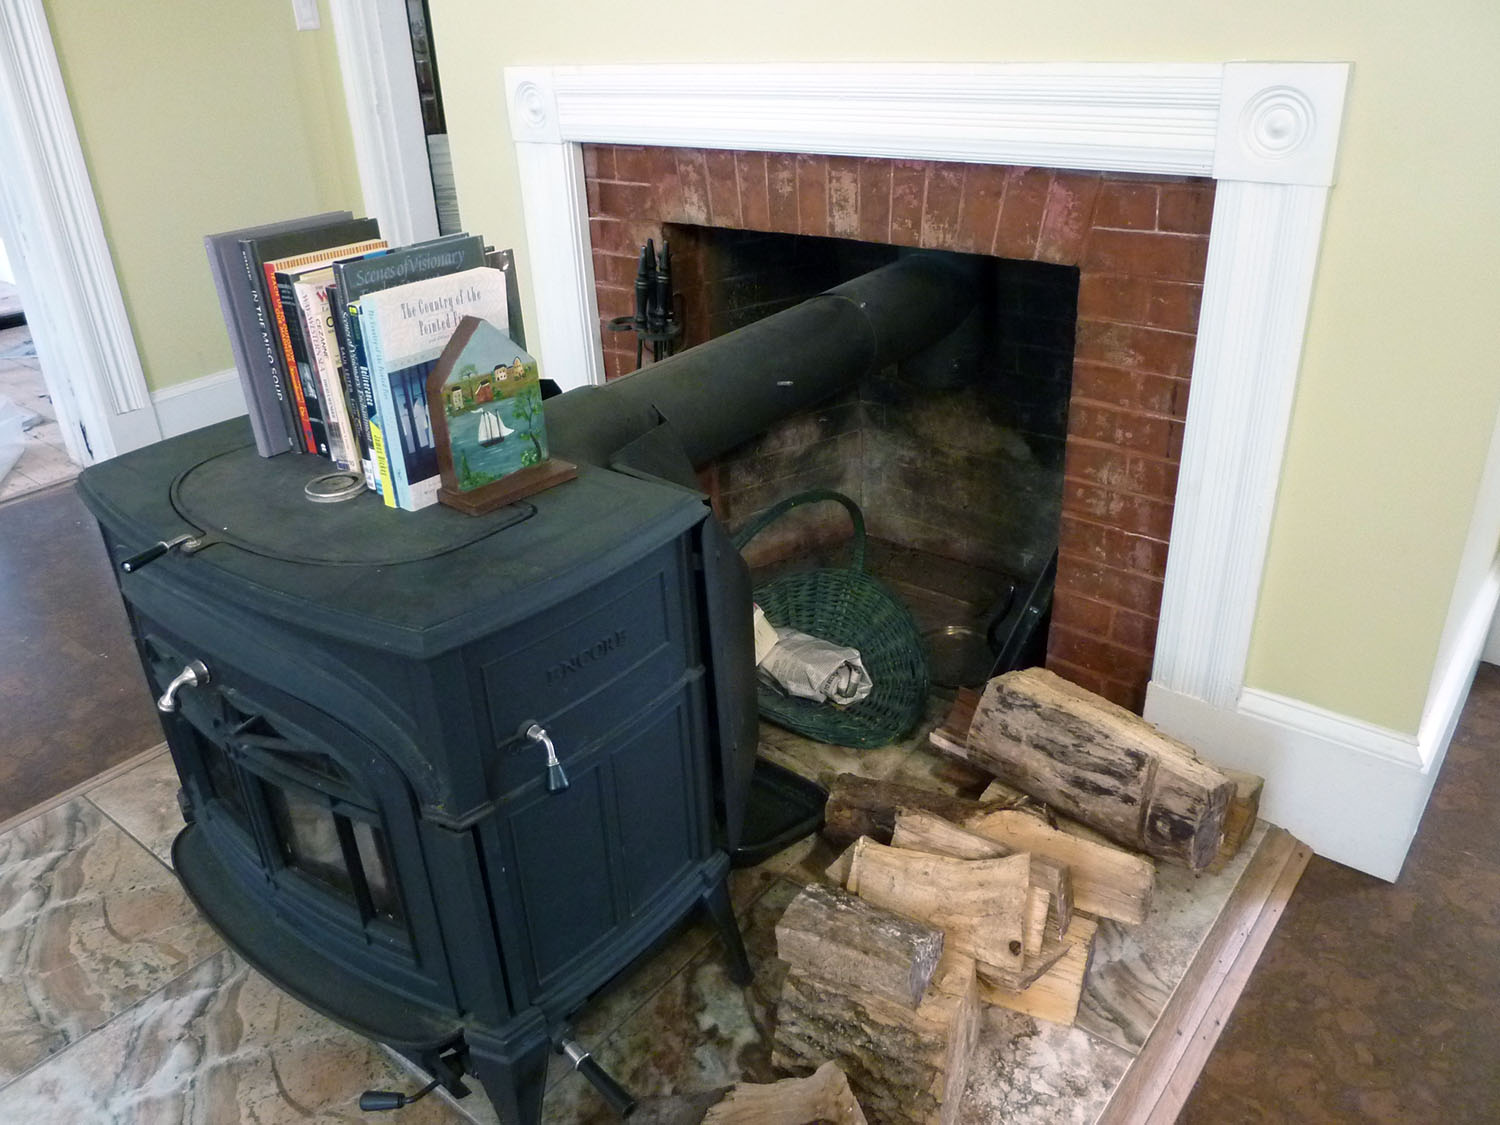 Casing from the house was reused to trim around the fireplace.